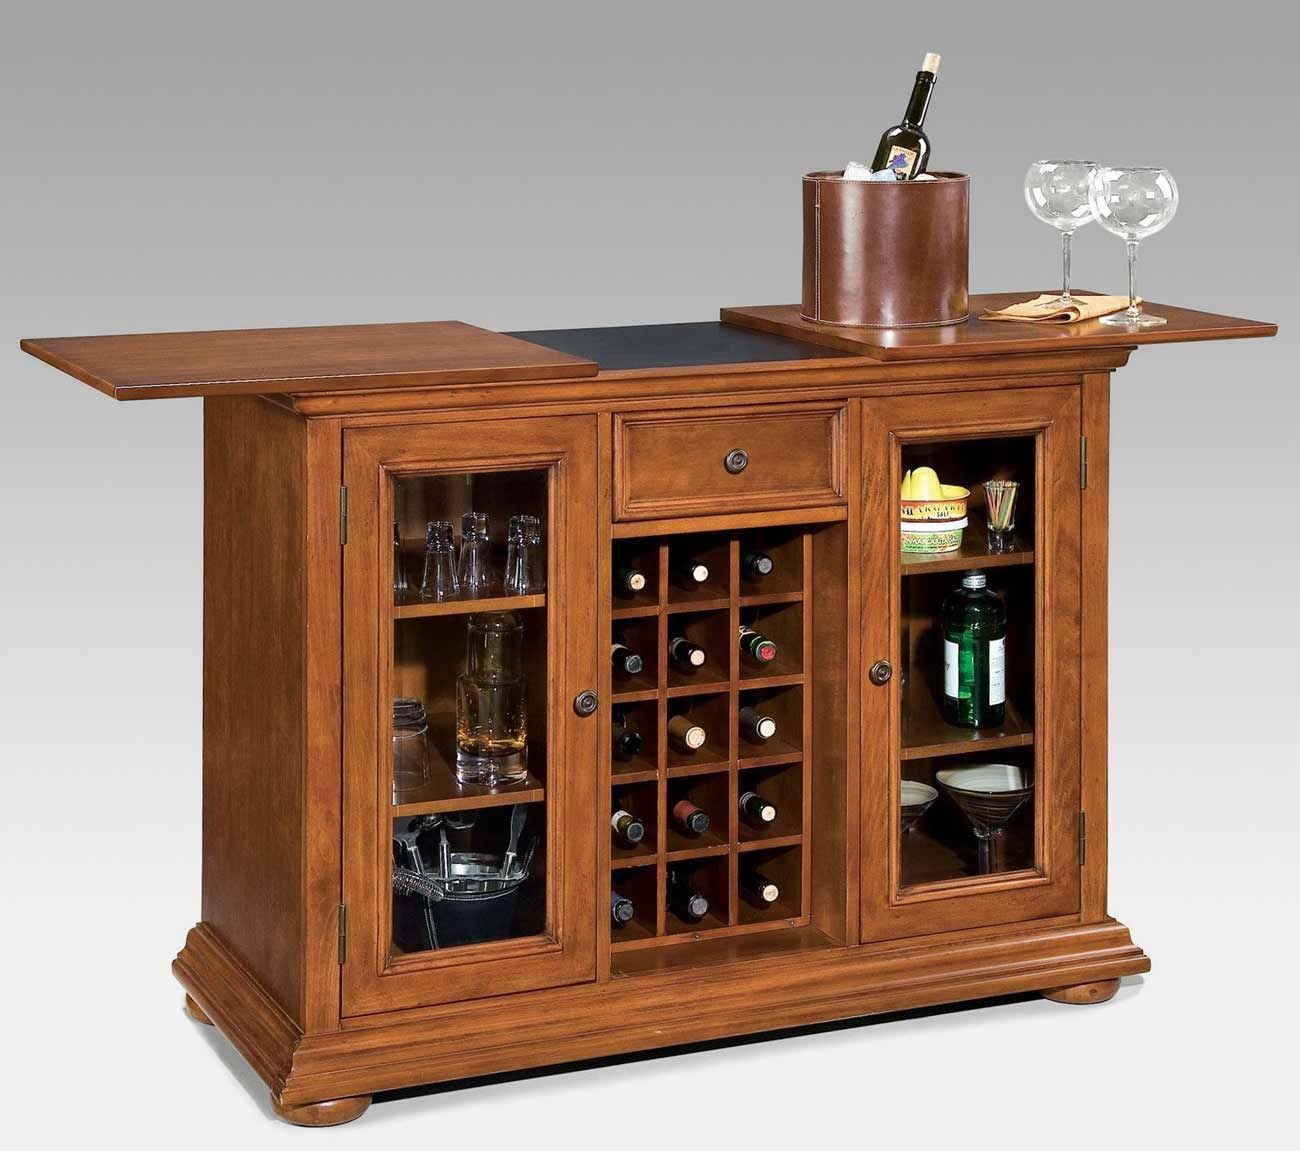 Homestead Bar Cabinets For Home Indoor Home Bar Cabinet Bar